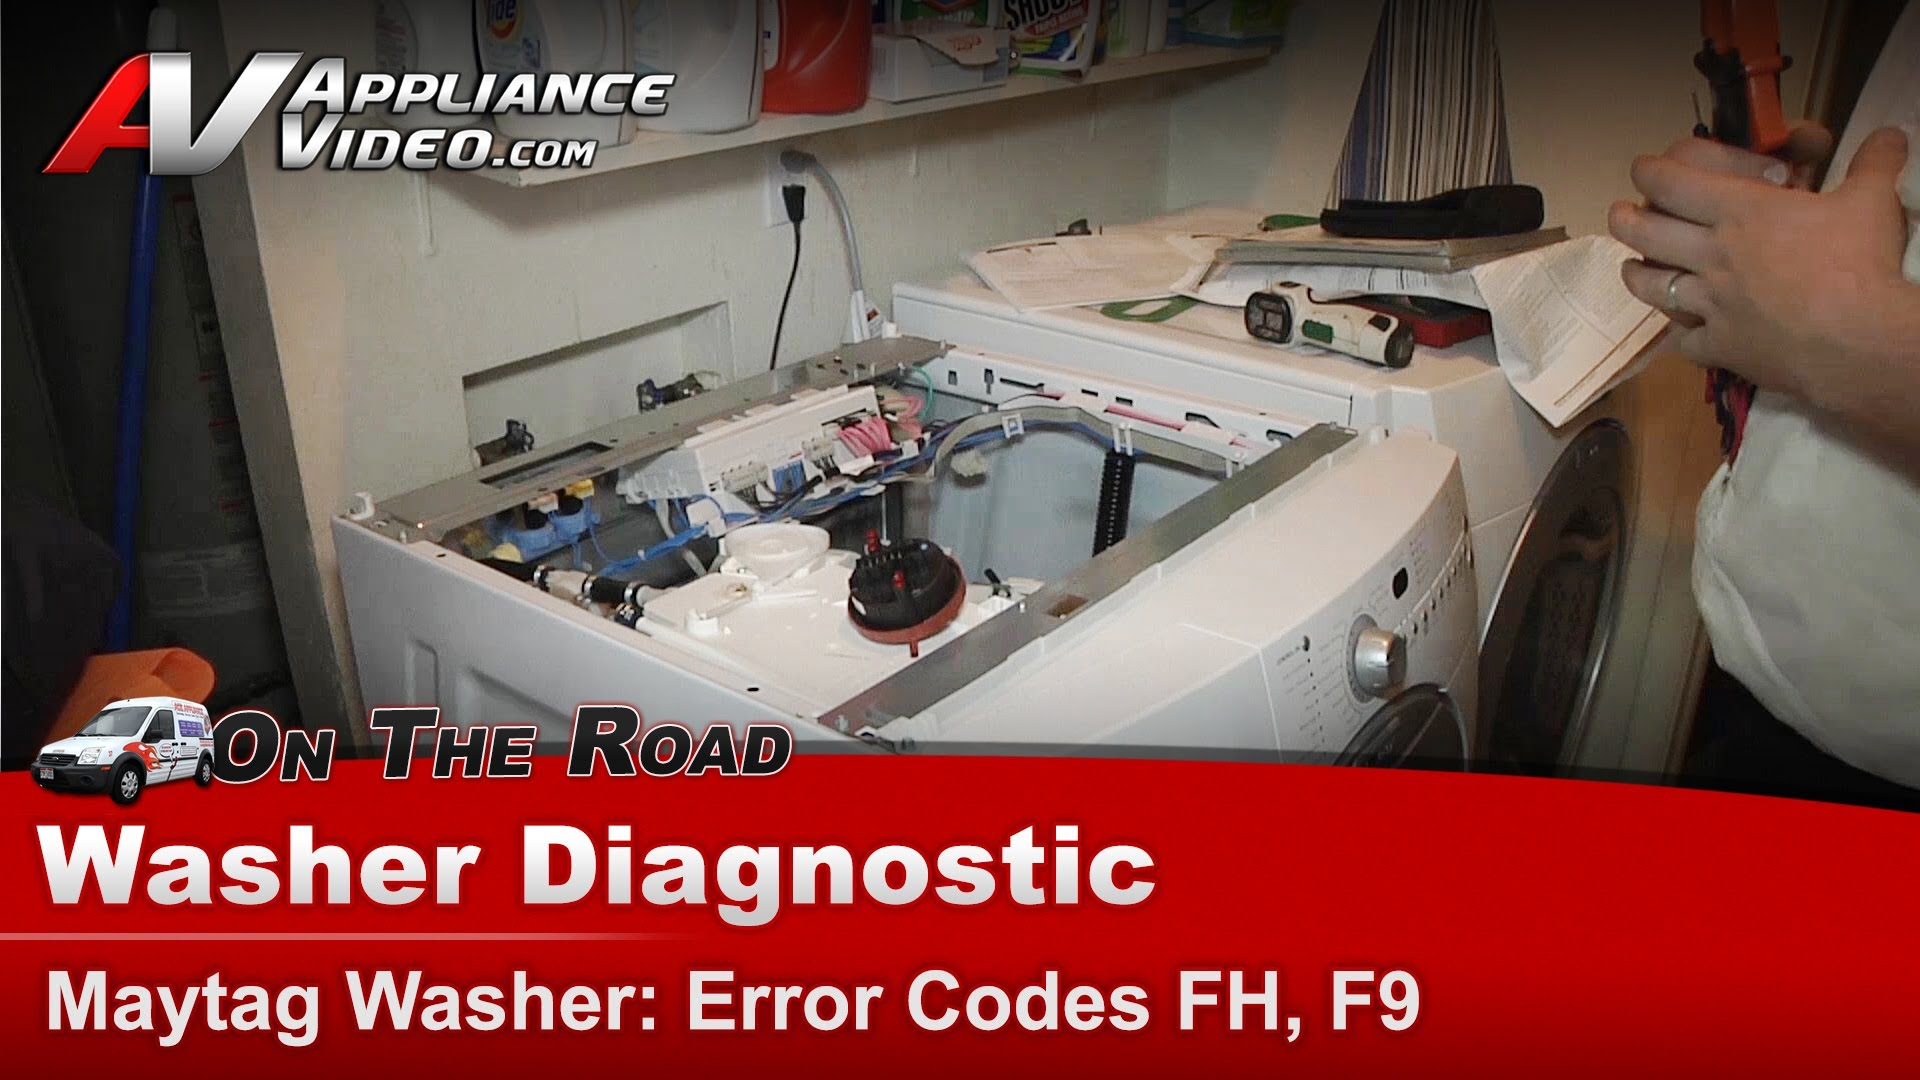 Maytag Mfw9800tq0 Washer Diagnostic Error Codes Fh F9